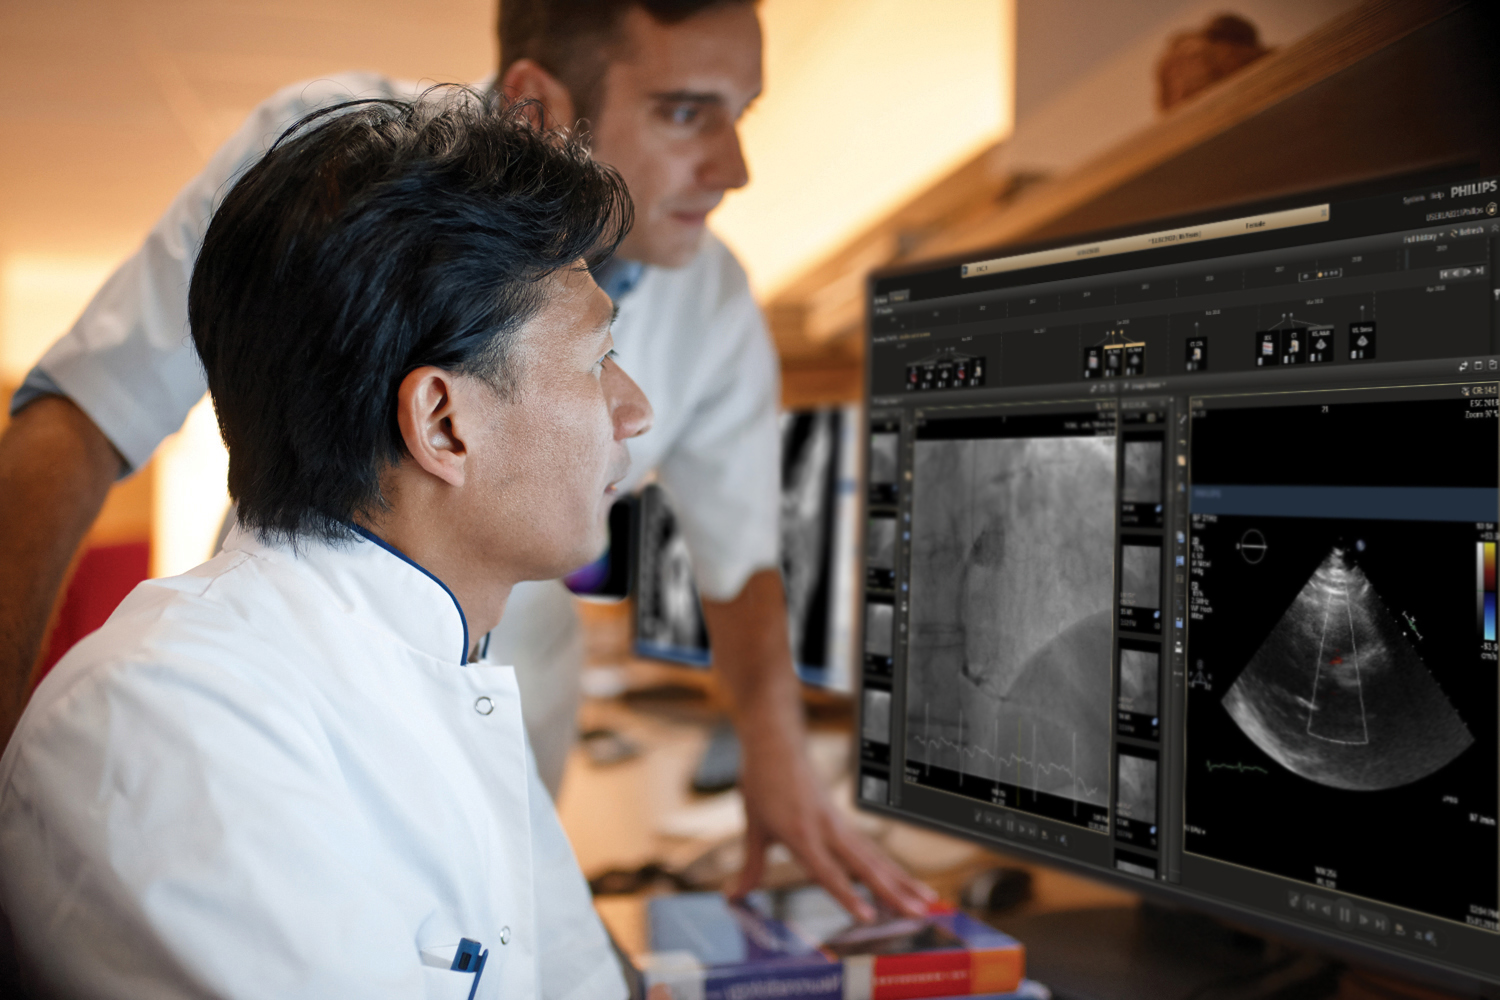 Philips launches new IntelliSpace Cardiovascular at HIMSS